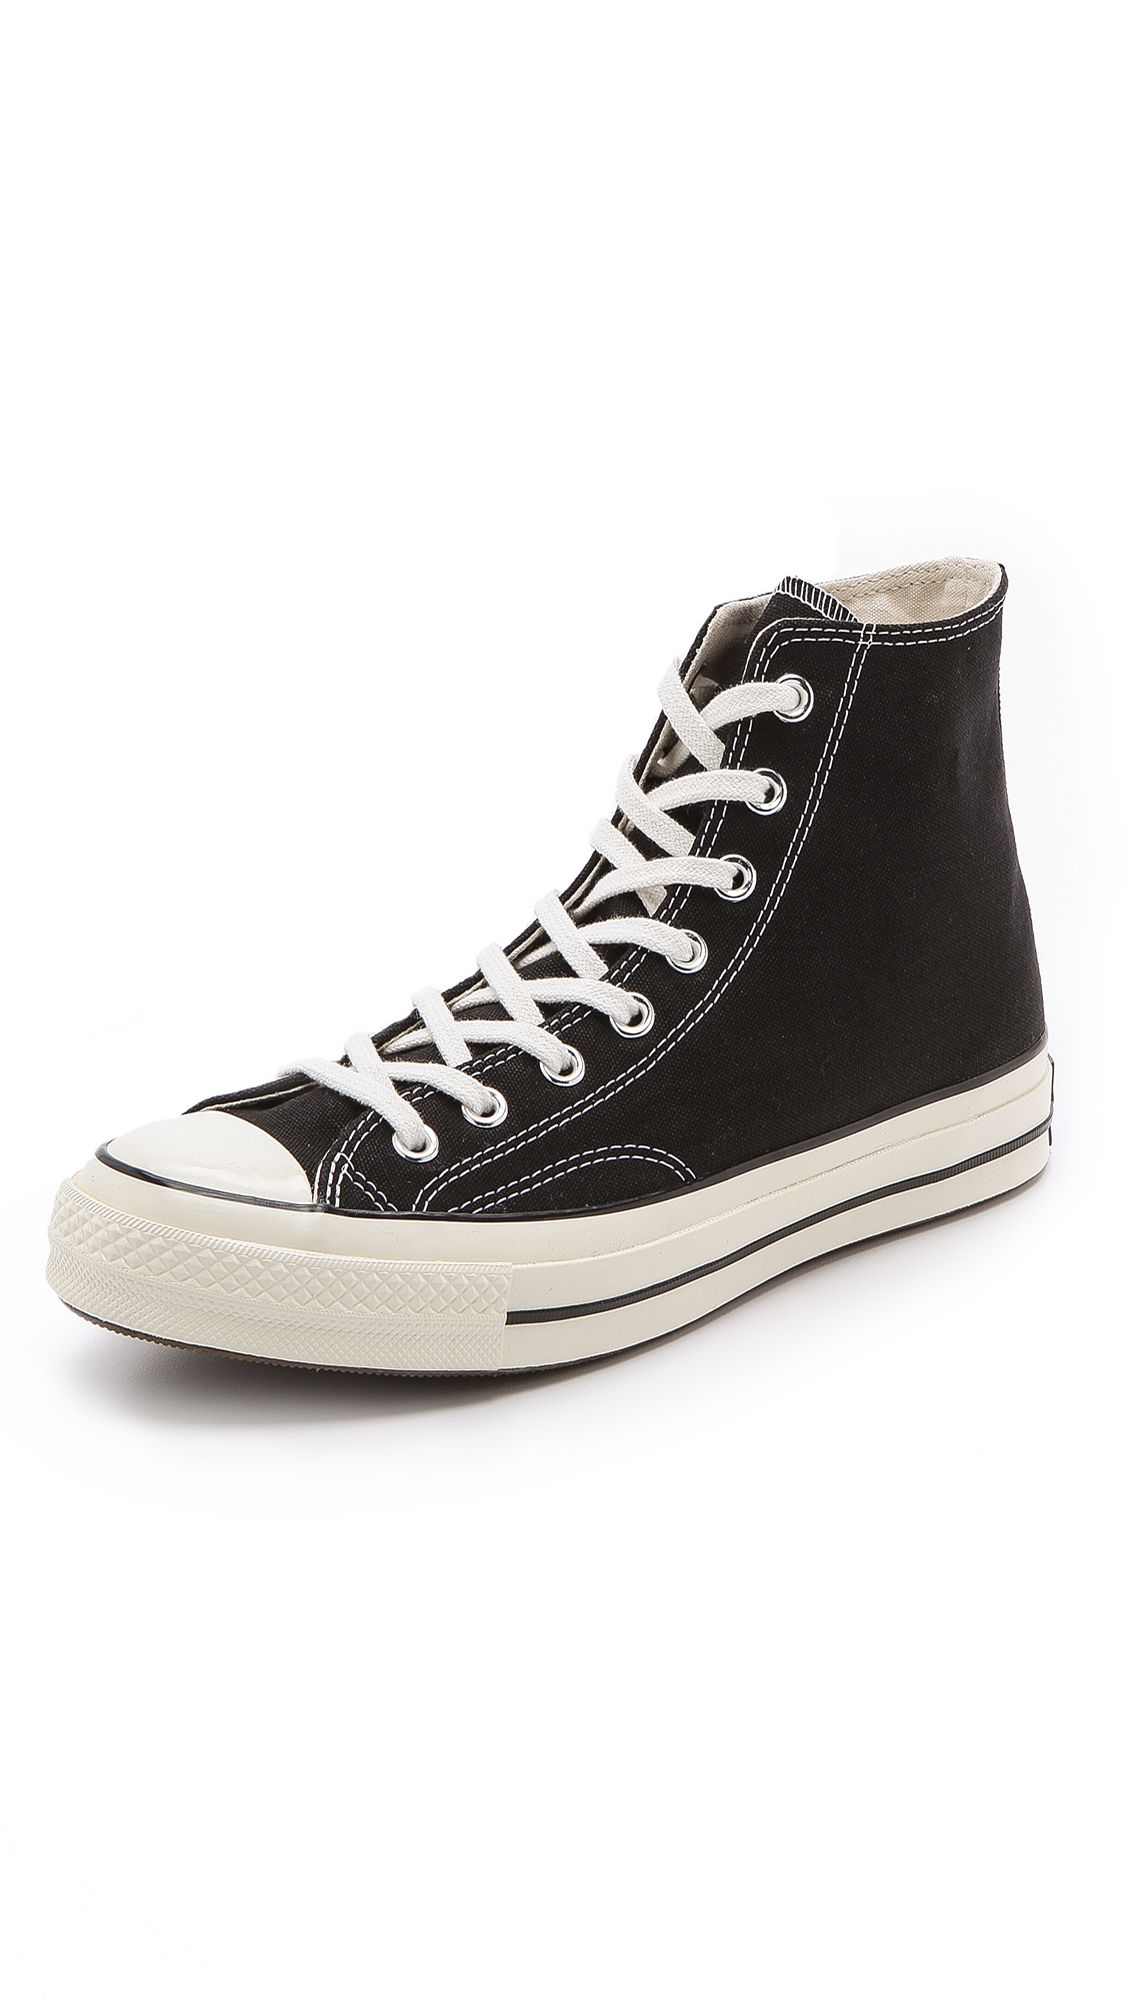 Converse Chuck Taylor All Star '70 High Top Men's Shoes Black